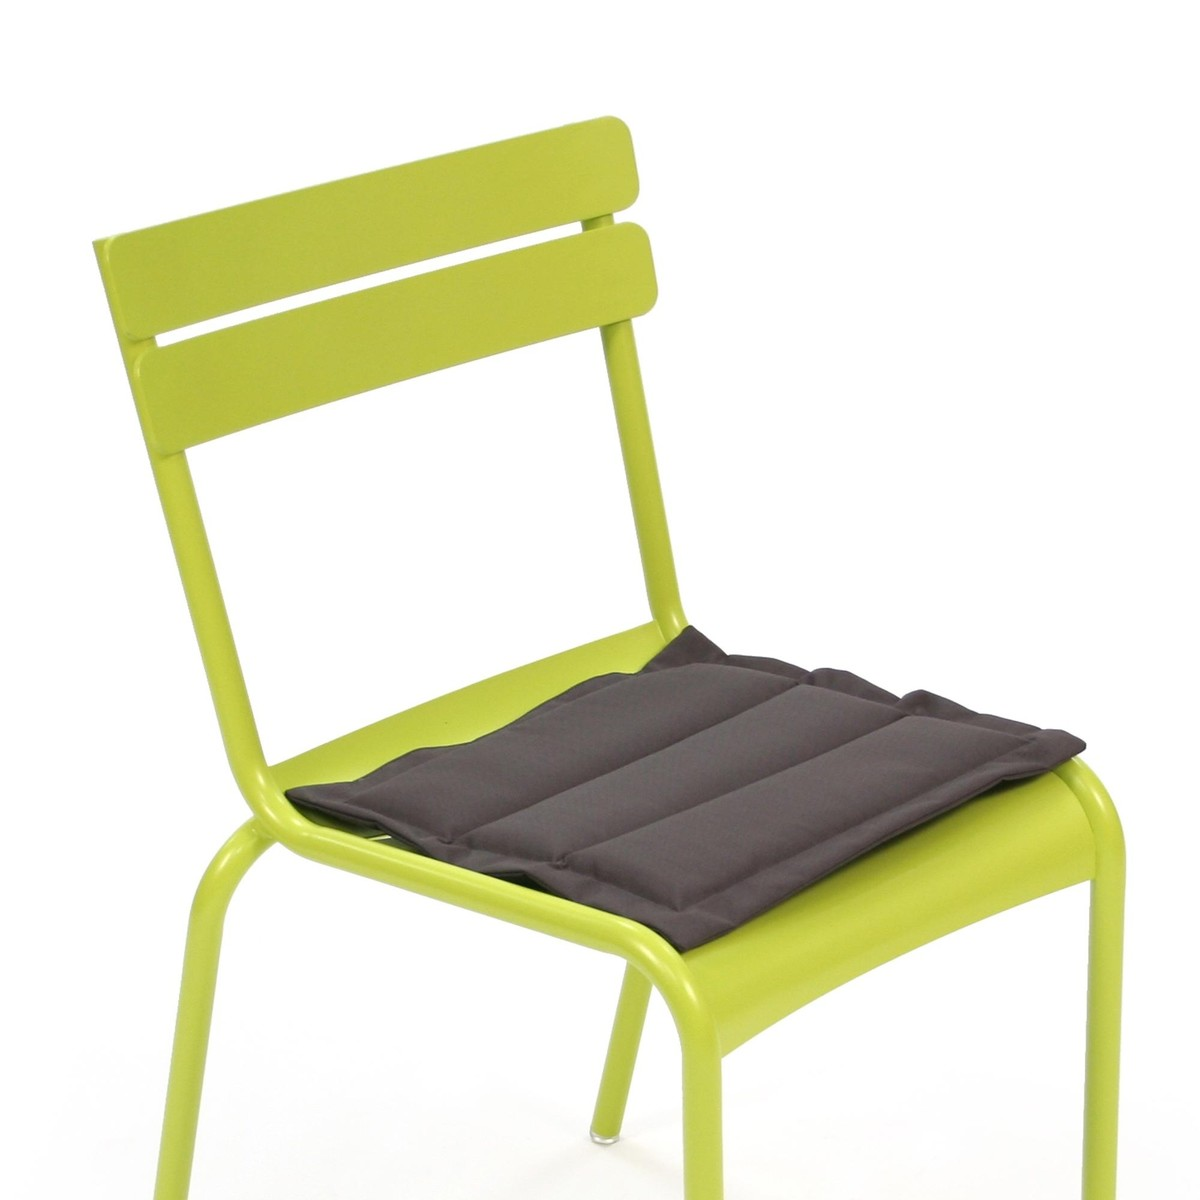 Luxembourg chaise coussin fermob galettes d 39 assise textiles - Chaise fermob luxembourg ...